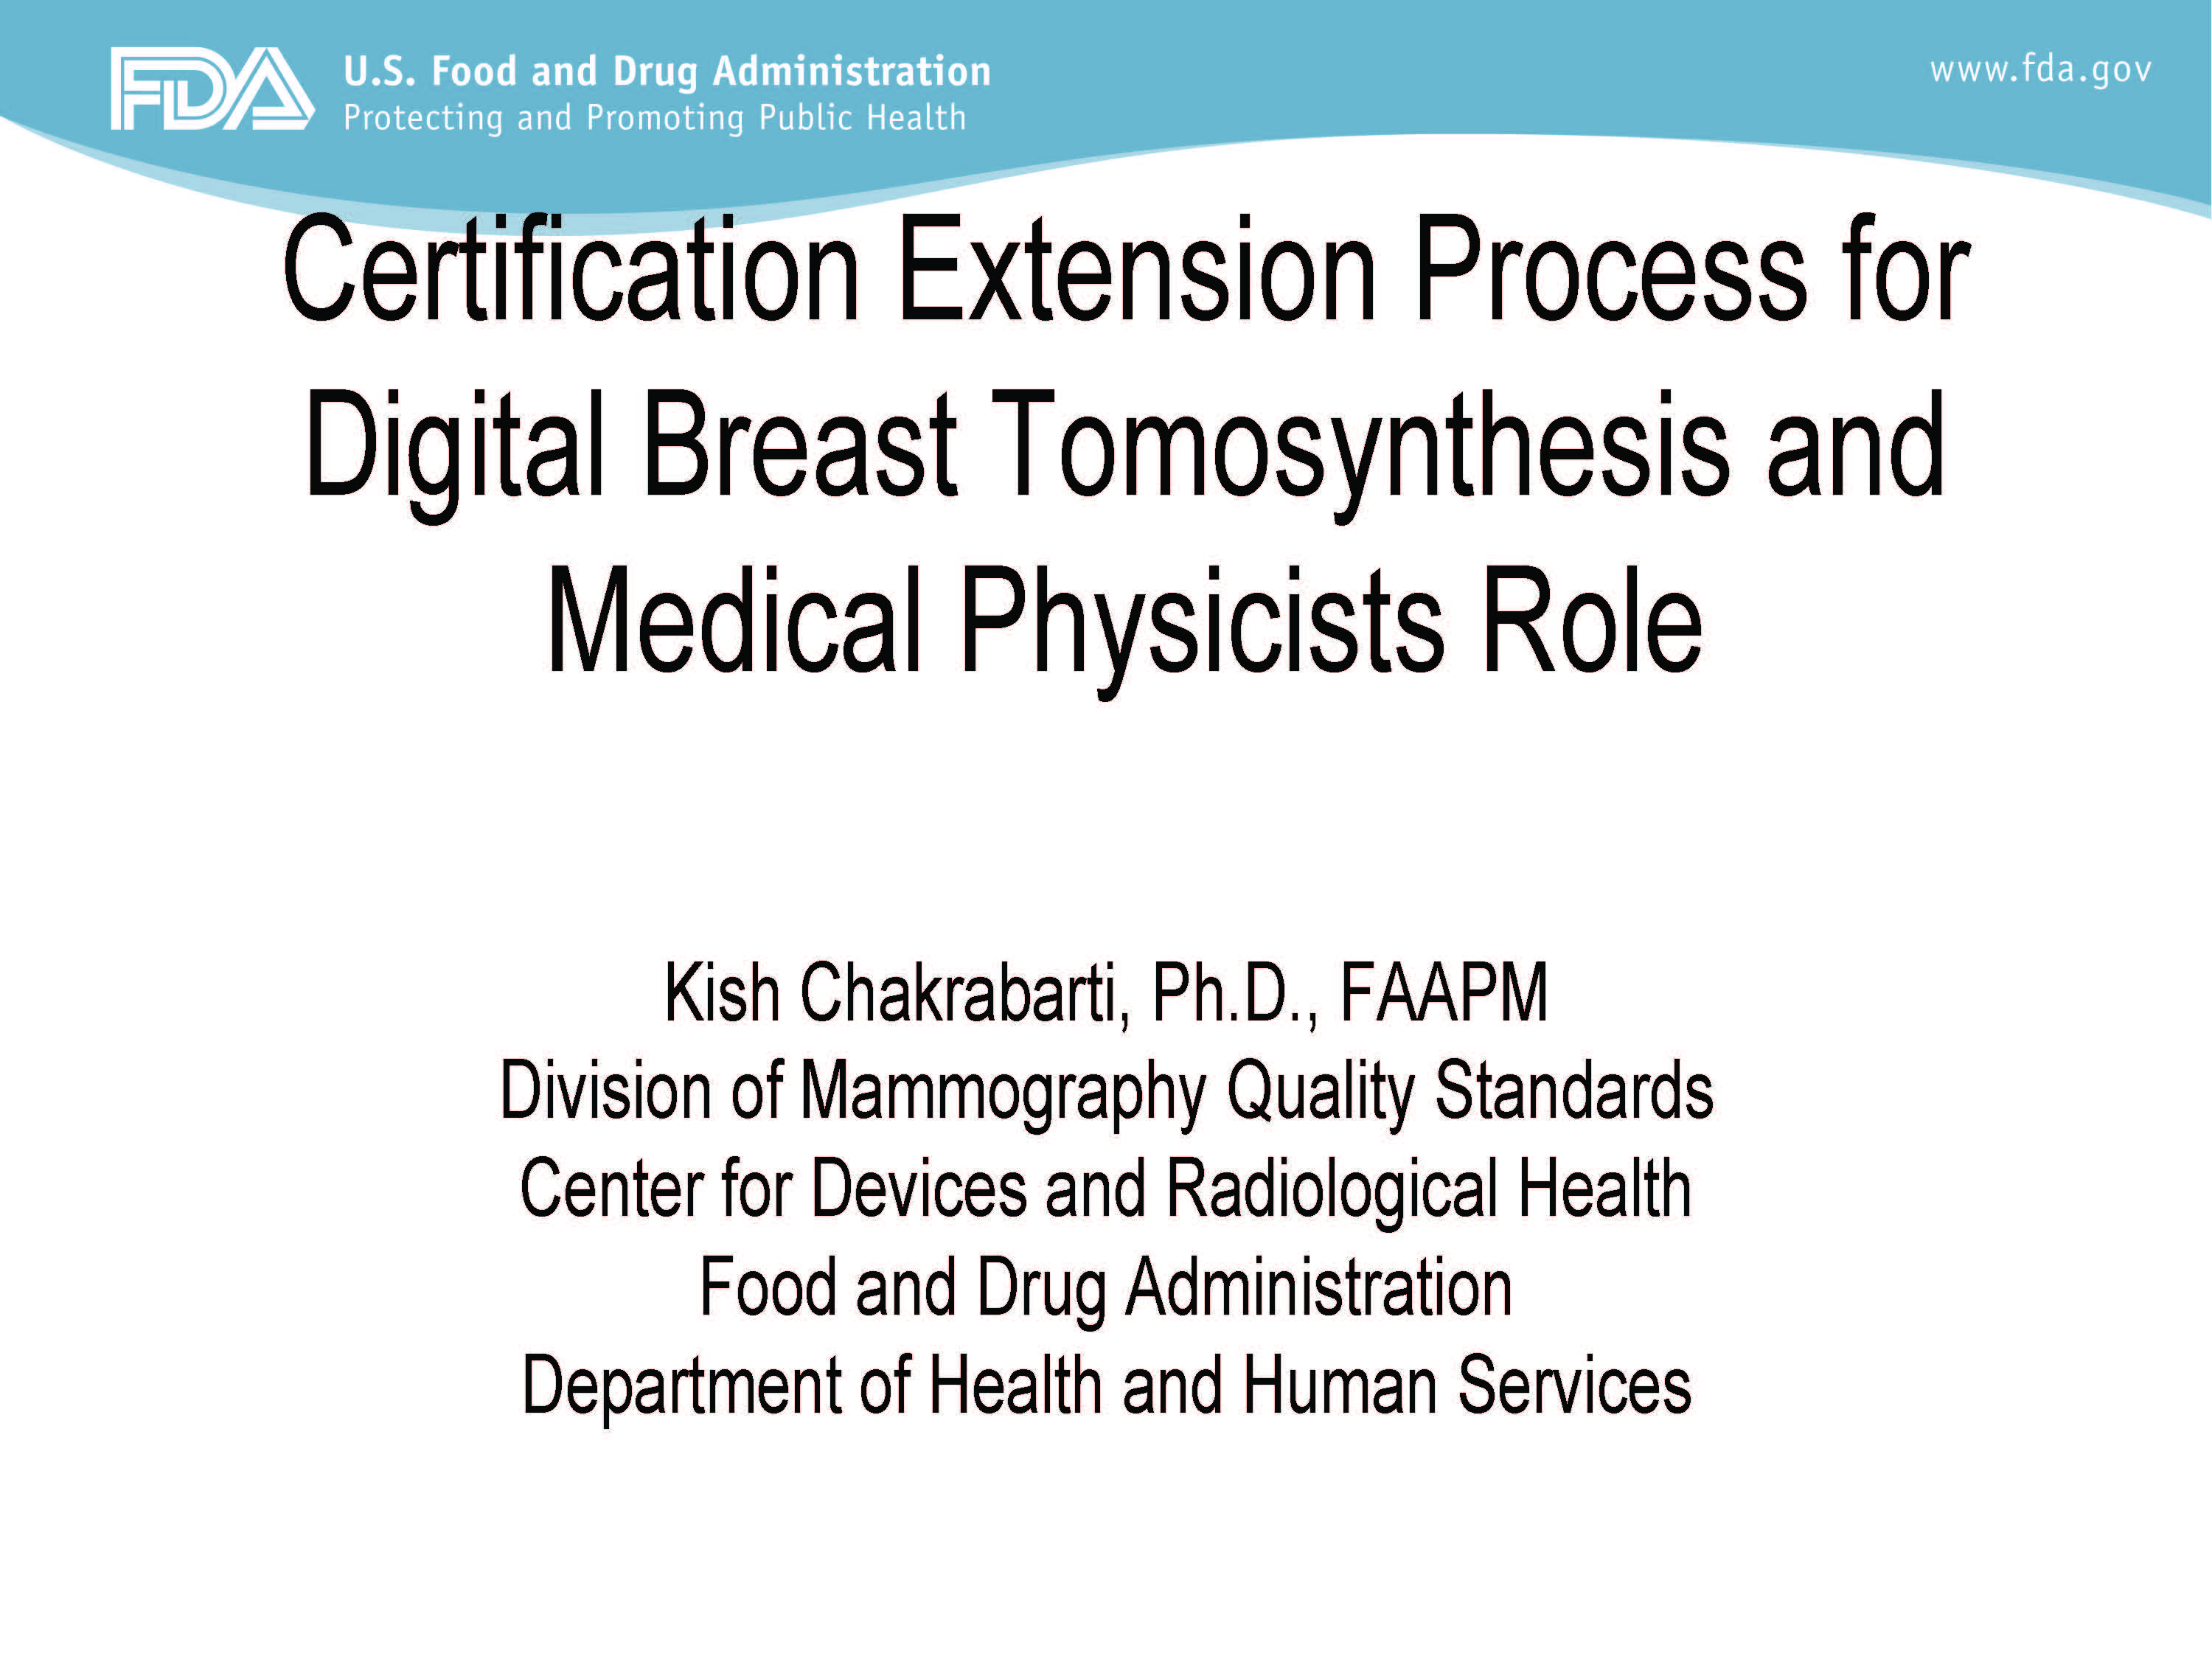 Virtual library aapm the american association of physicists in mo b 209 certificate extension process for dbt and the medical physicists role certificate extension process for dbt and the medical physicists role xflitez Gallery